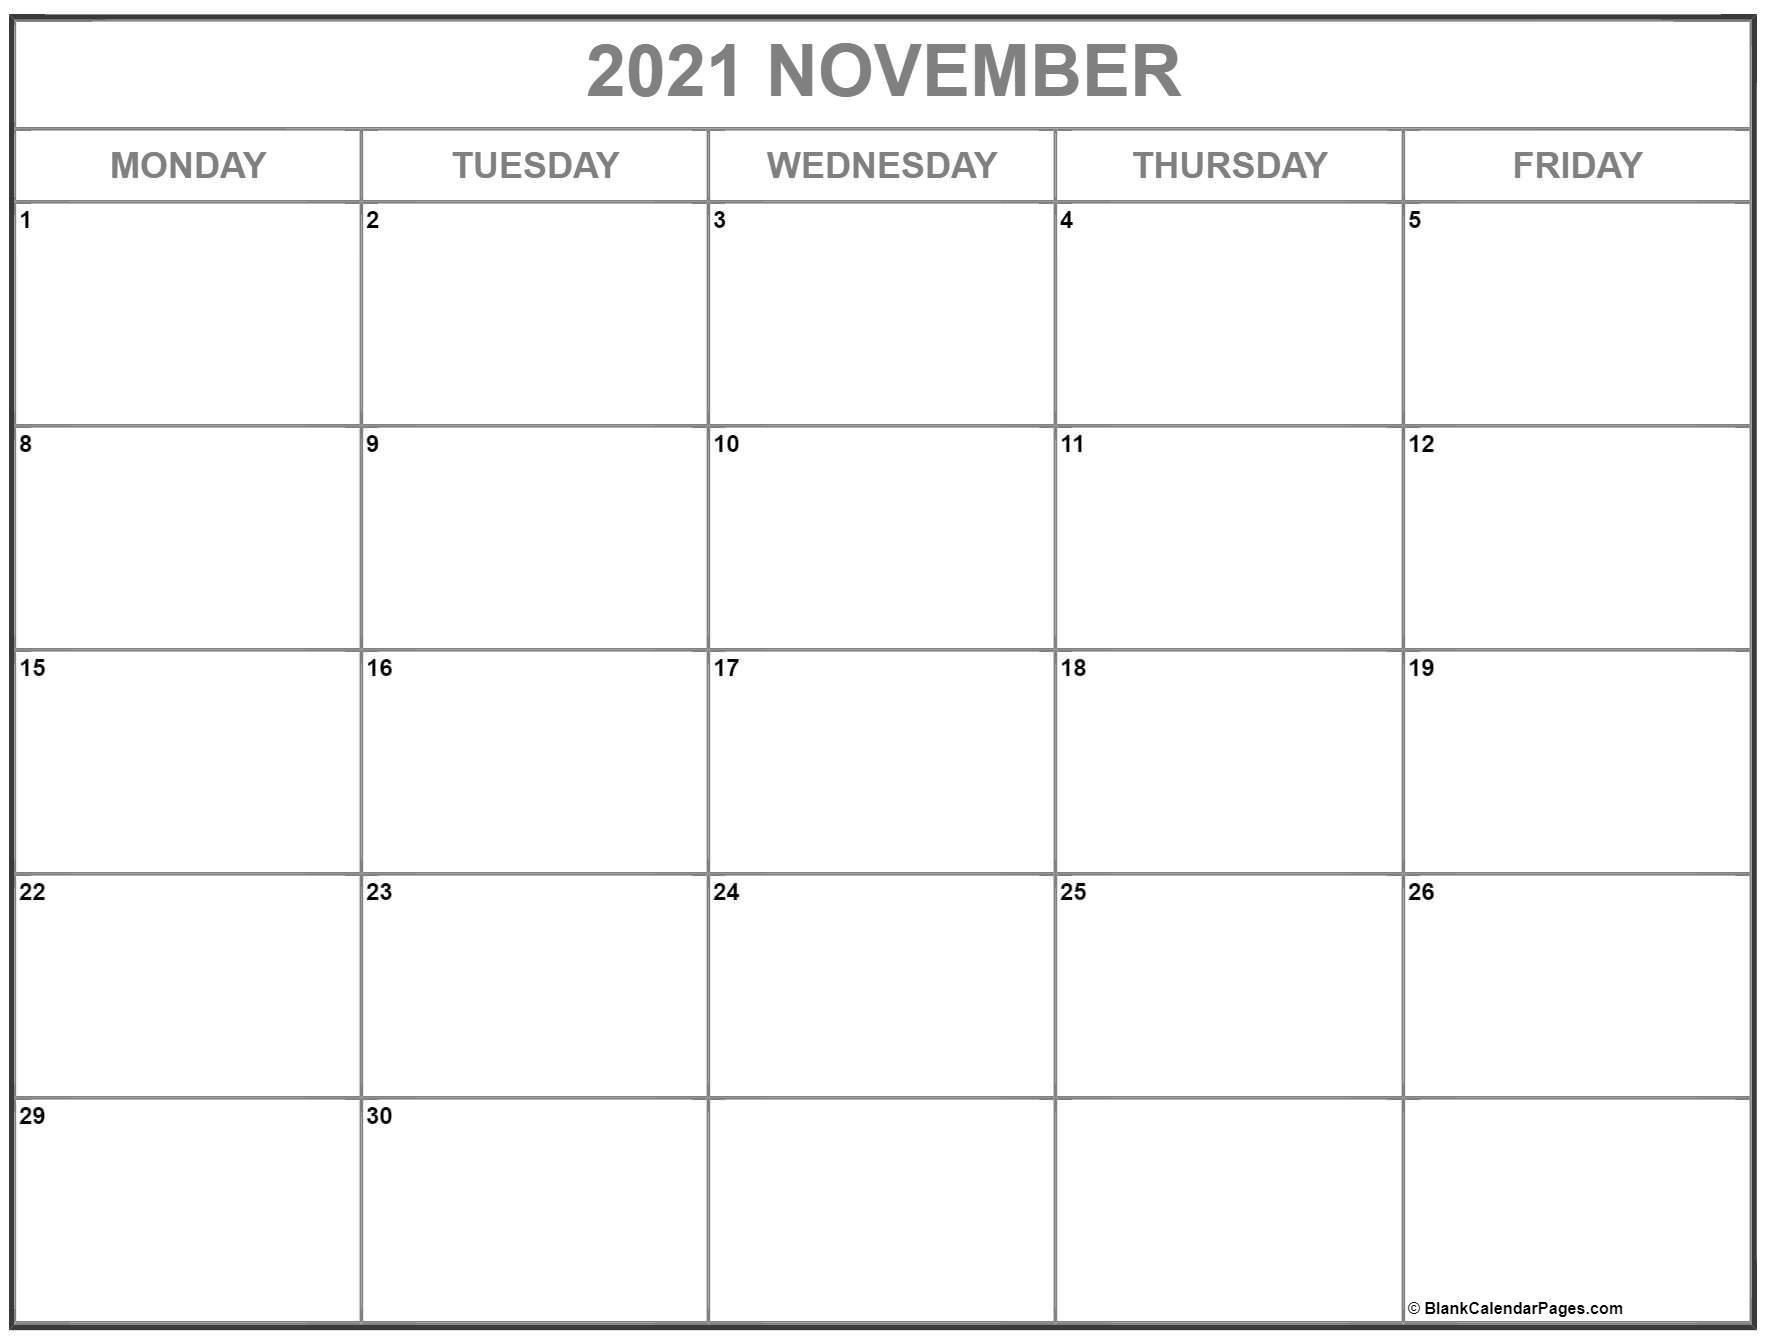 November 2021 Monday through Friday calendar.